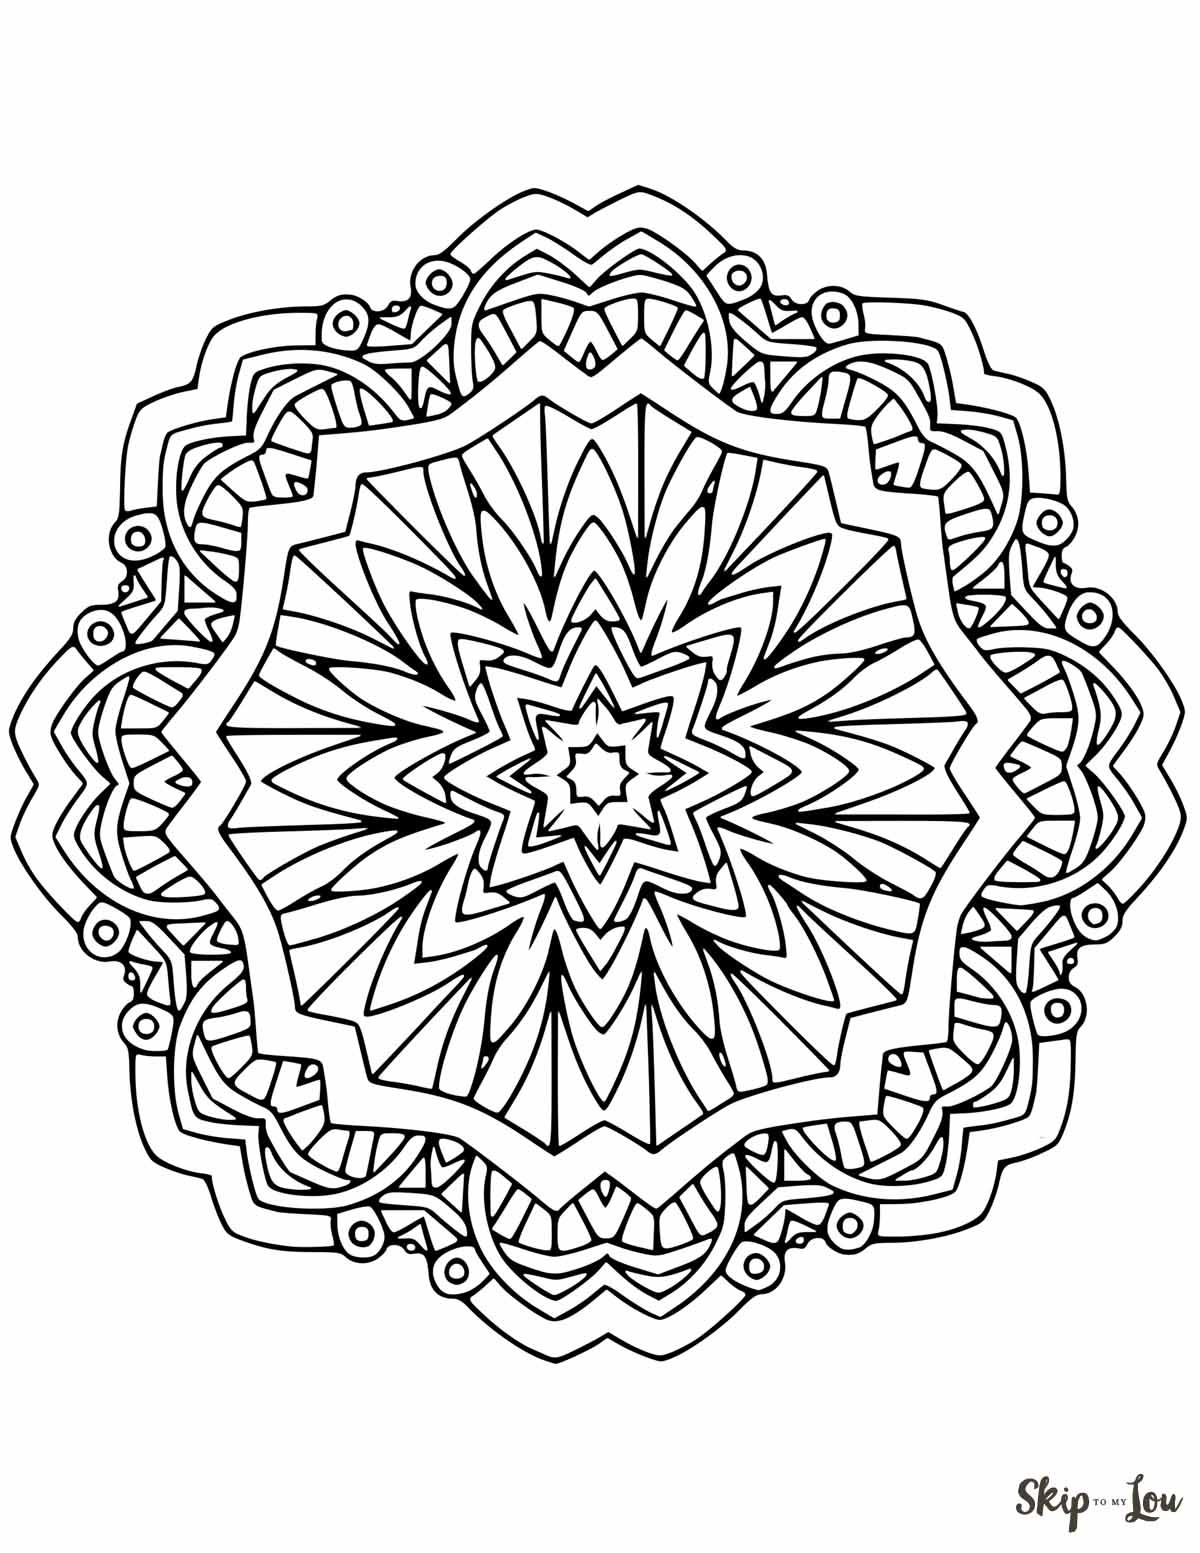 Beautiful Free Mandala Coloring Pages Geometric Coloring Pages Mandala Coloring Pages Abstract Coloring Pages